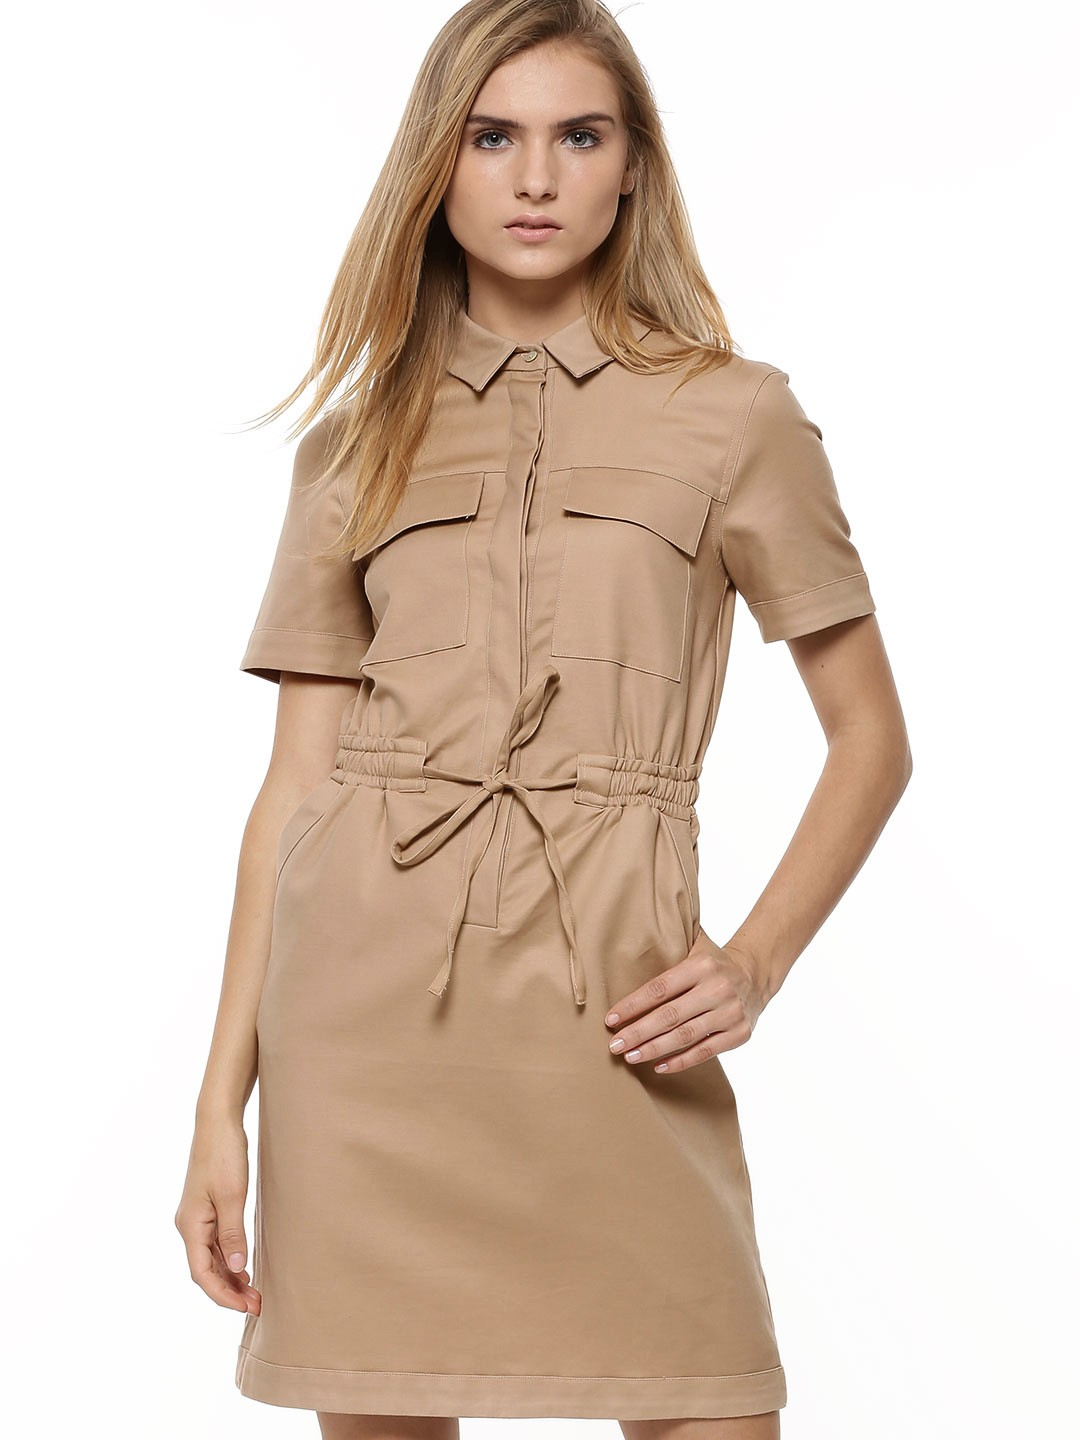 Buy warehouse safari style shirt dress for women women 39 s for Where to buy a dress shirt